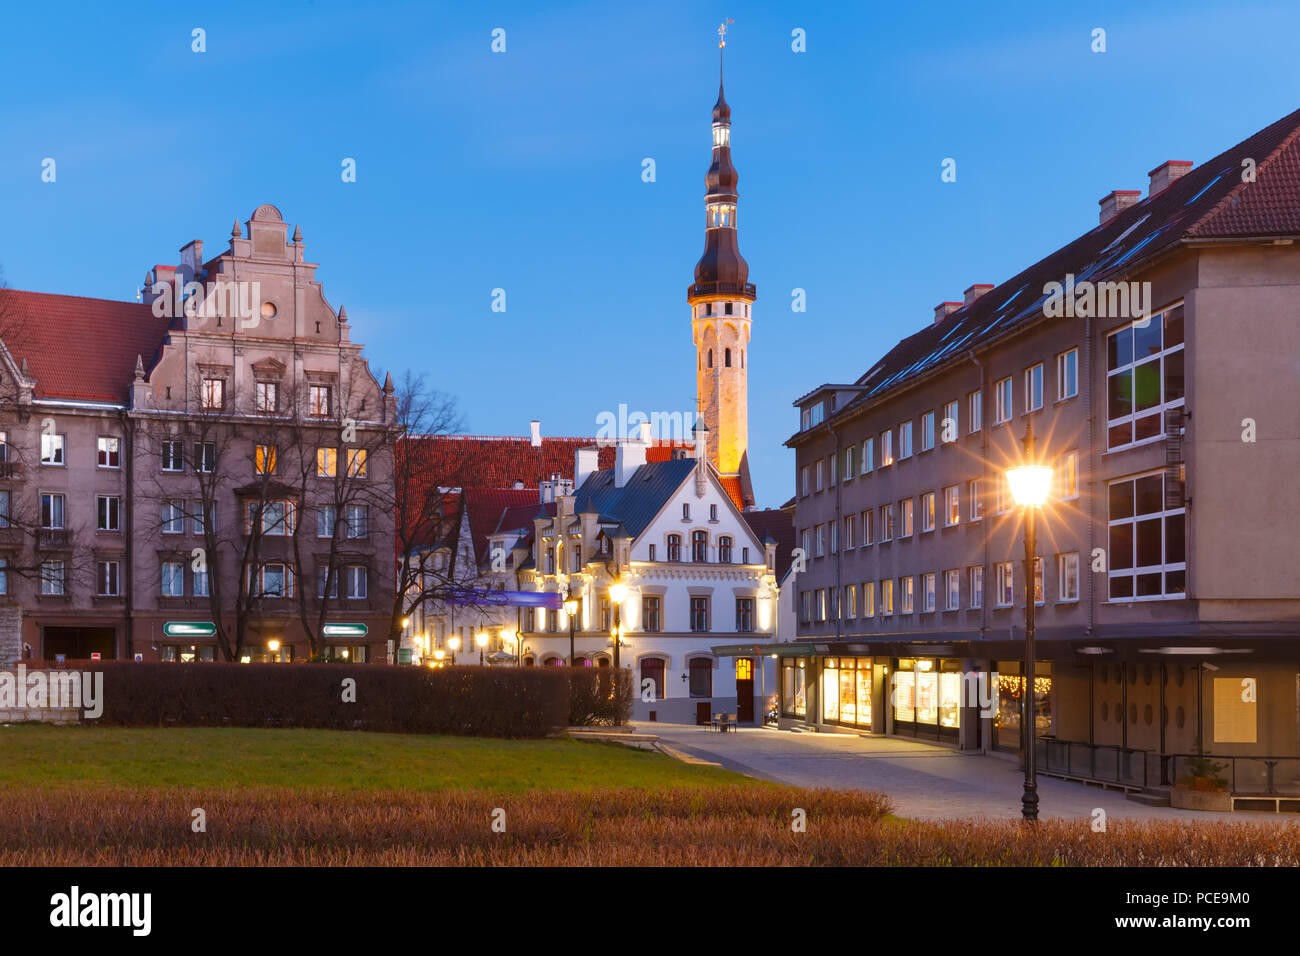 Night street in the Old Town of Tallinn, Estonia Stock Photo